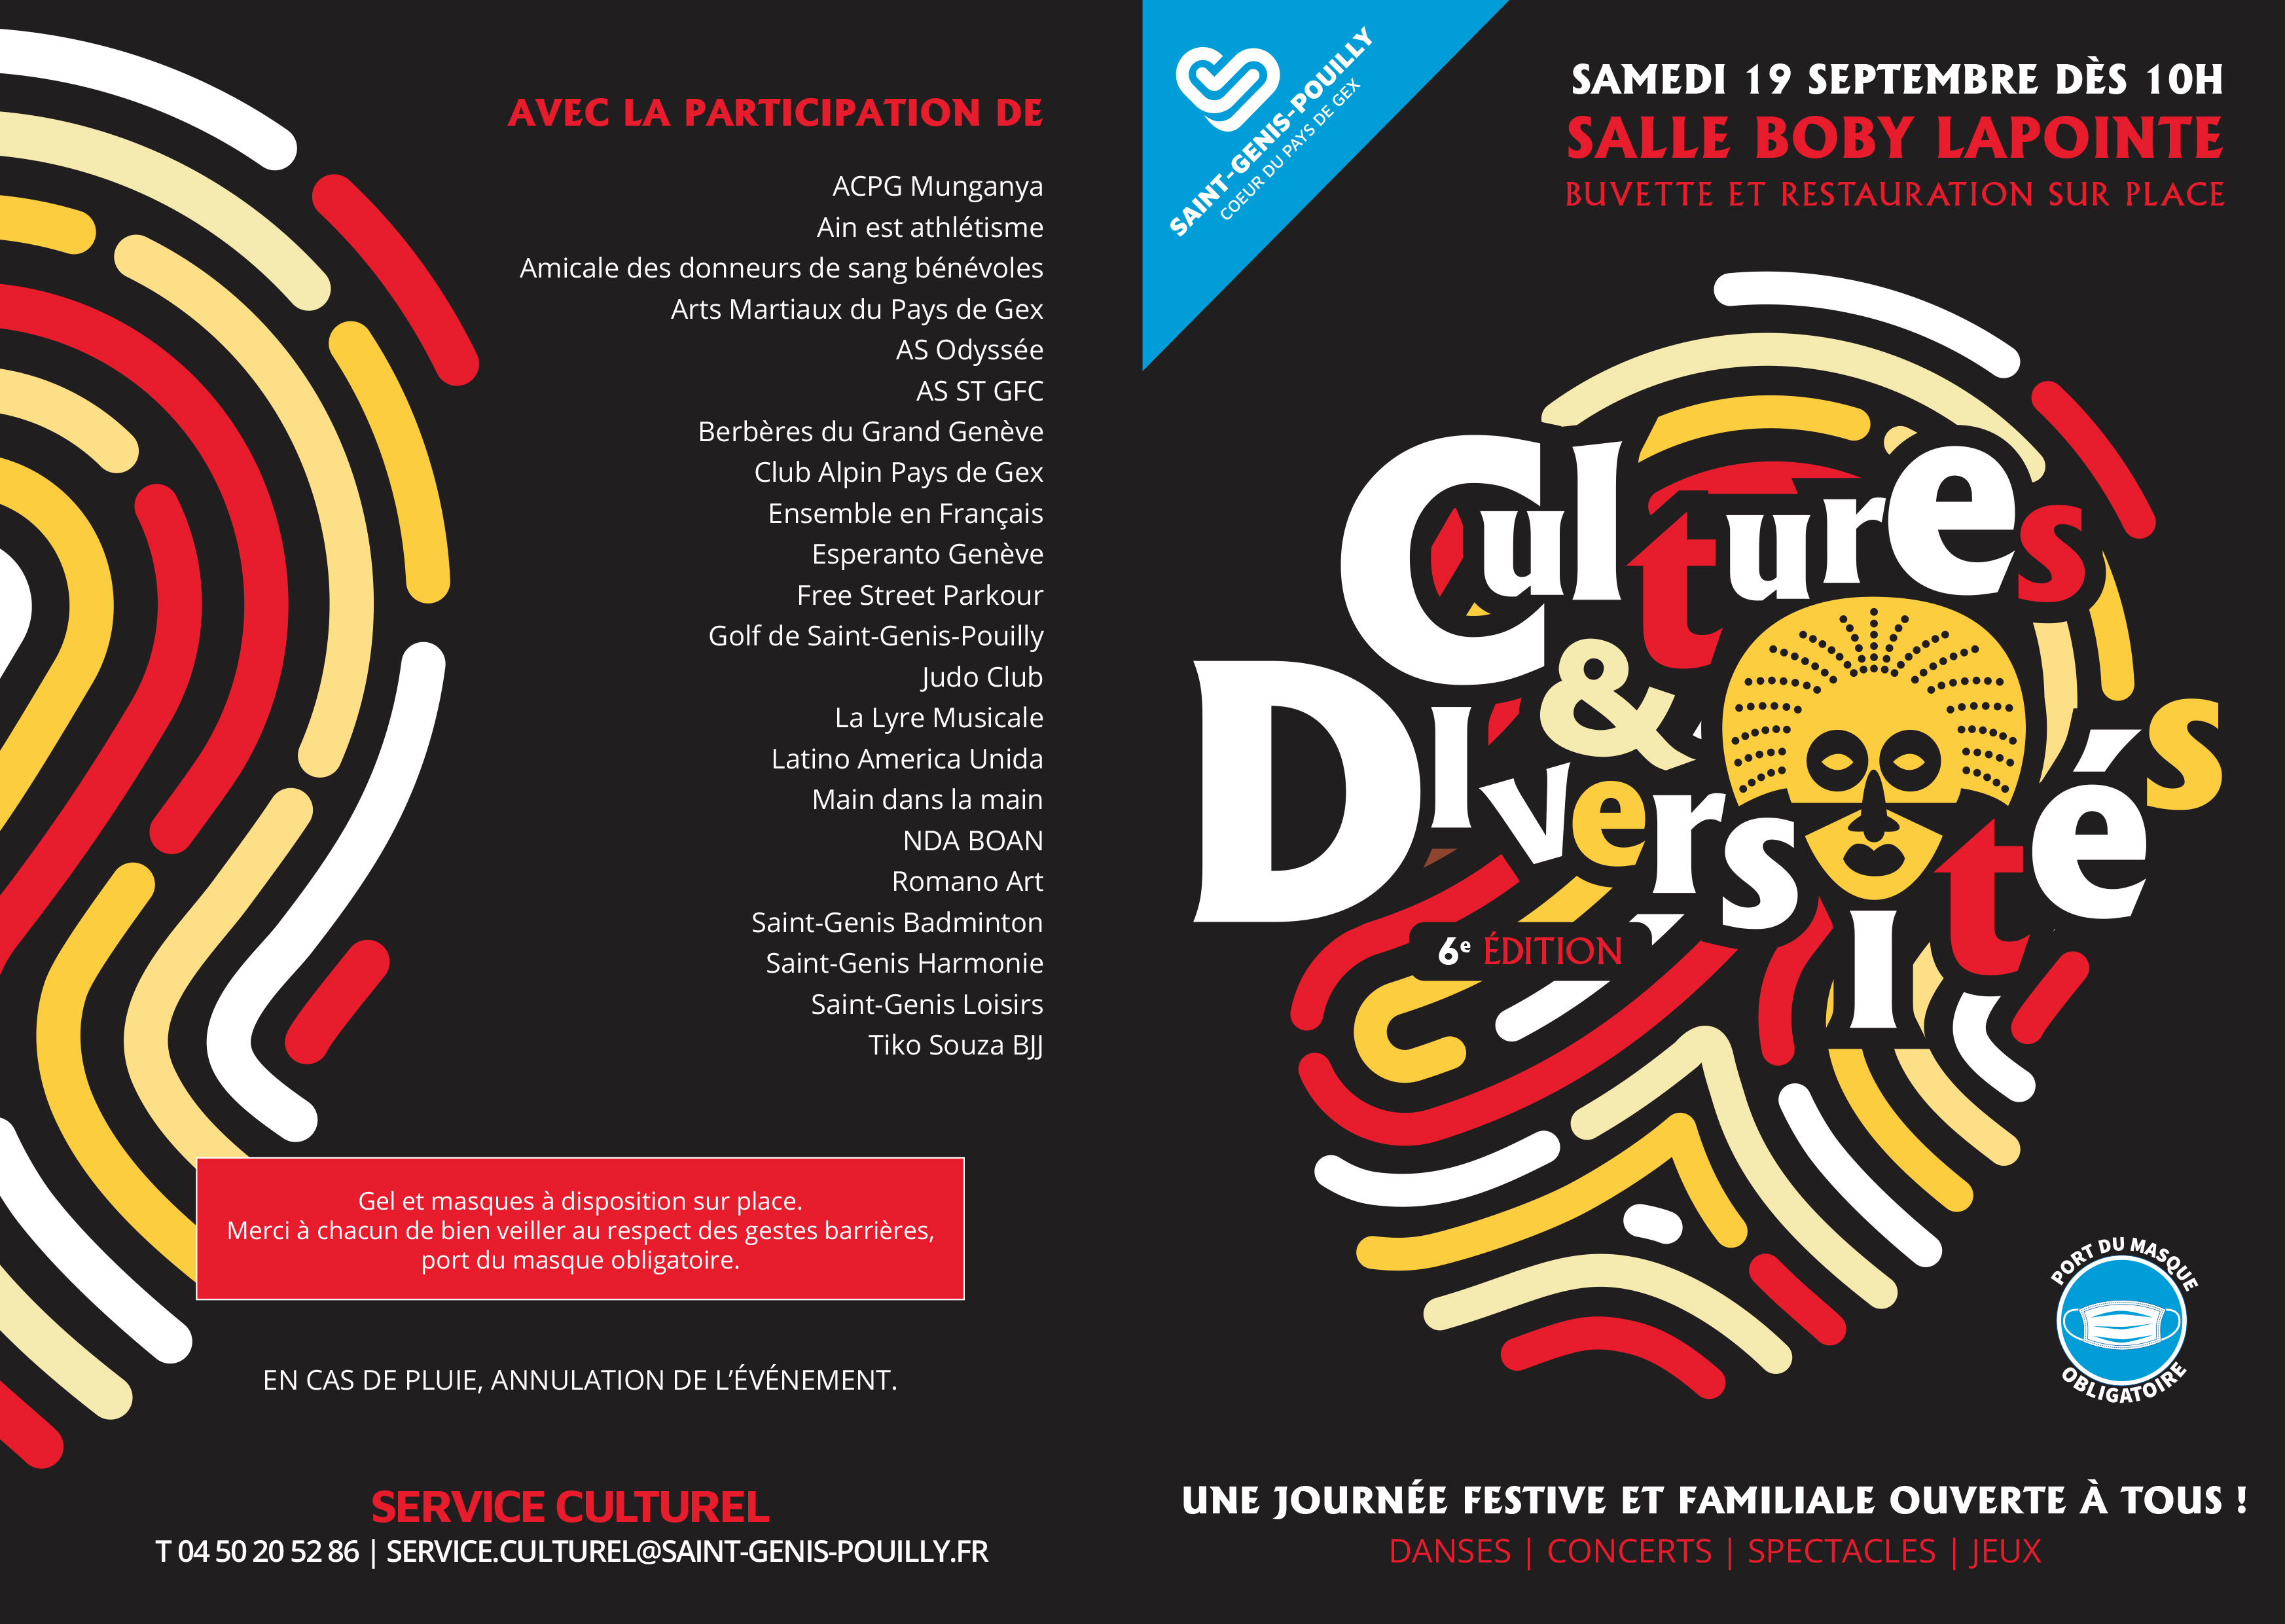 flyer_cultetdivers2020_4pages_a5_print-1.jpg